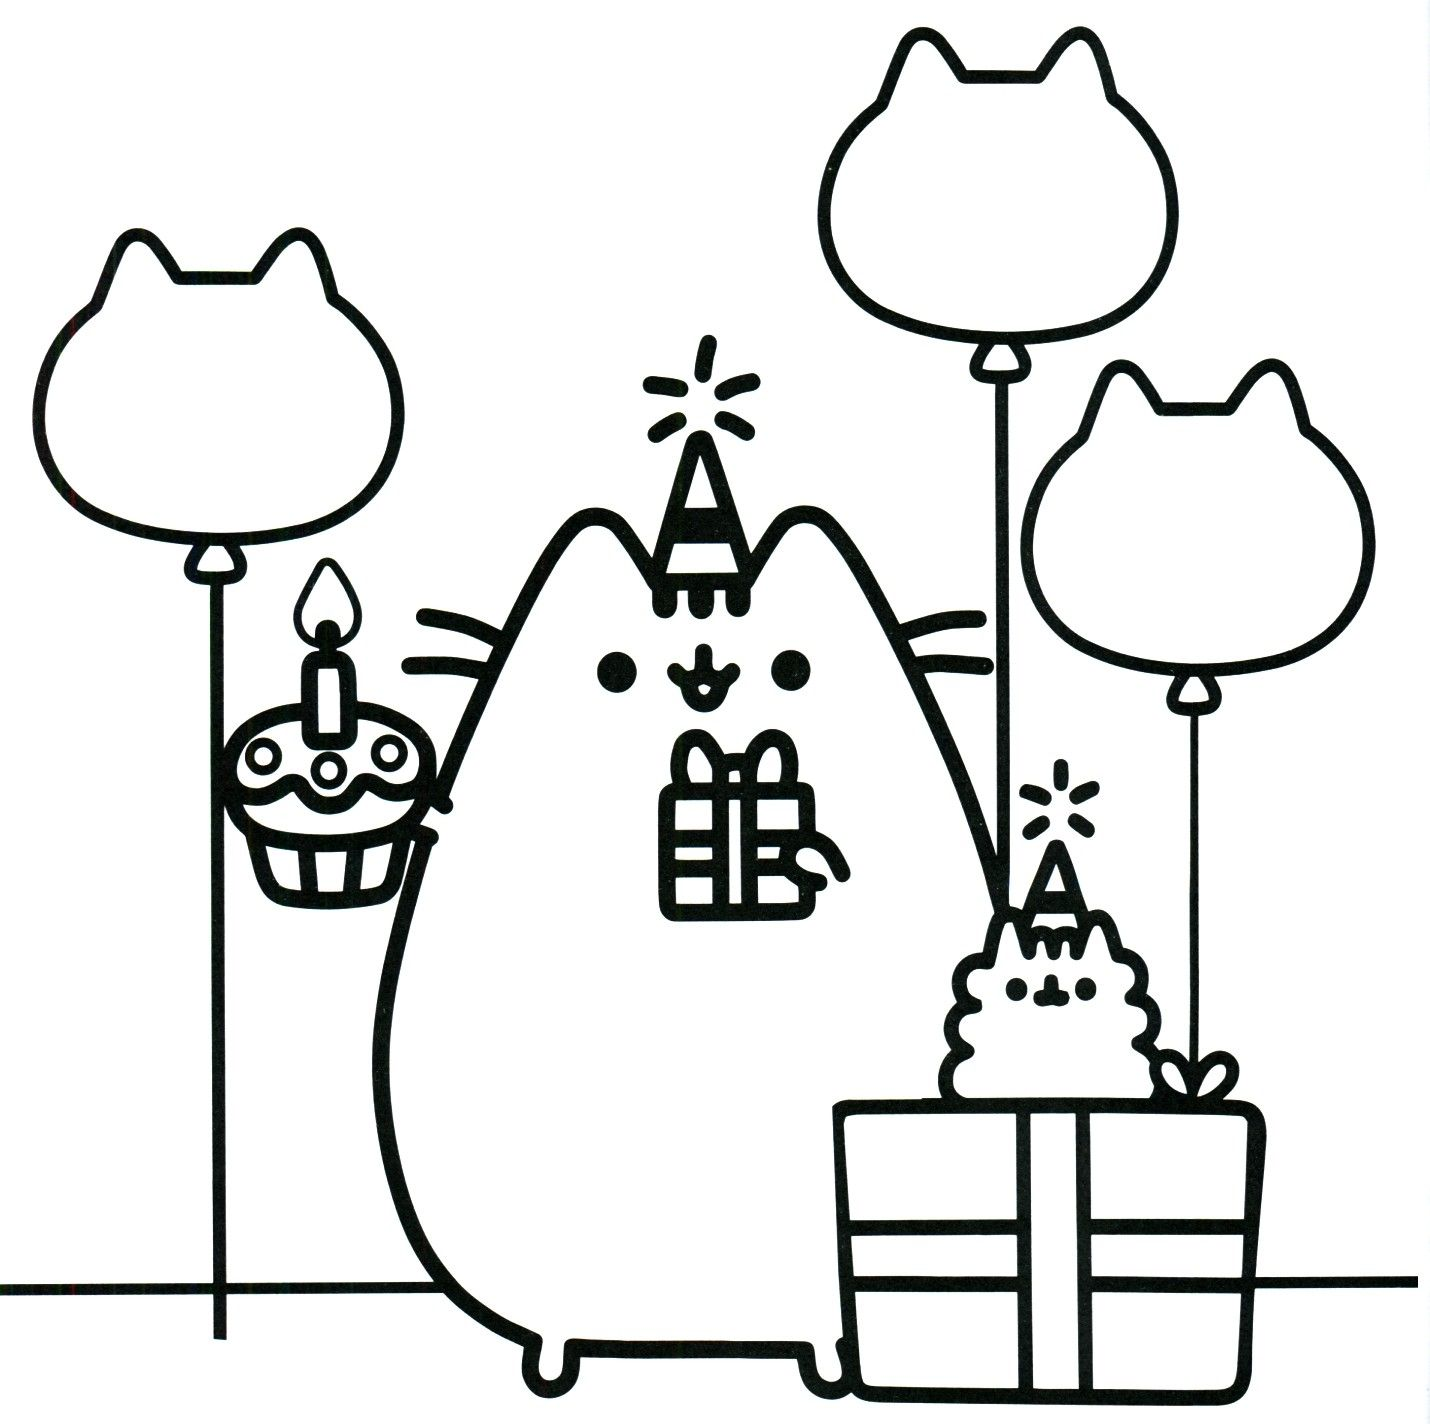 Printable Pusheen Coloring Book Pusheen Pusheen The Cat Dibujos Kawaii Para Imprimir Dibujos Kawaii Dibujos Para Pintar